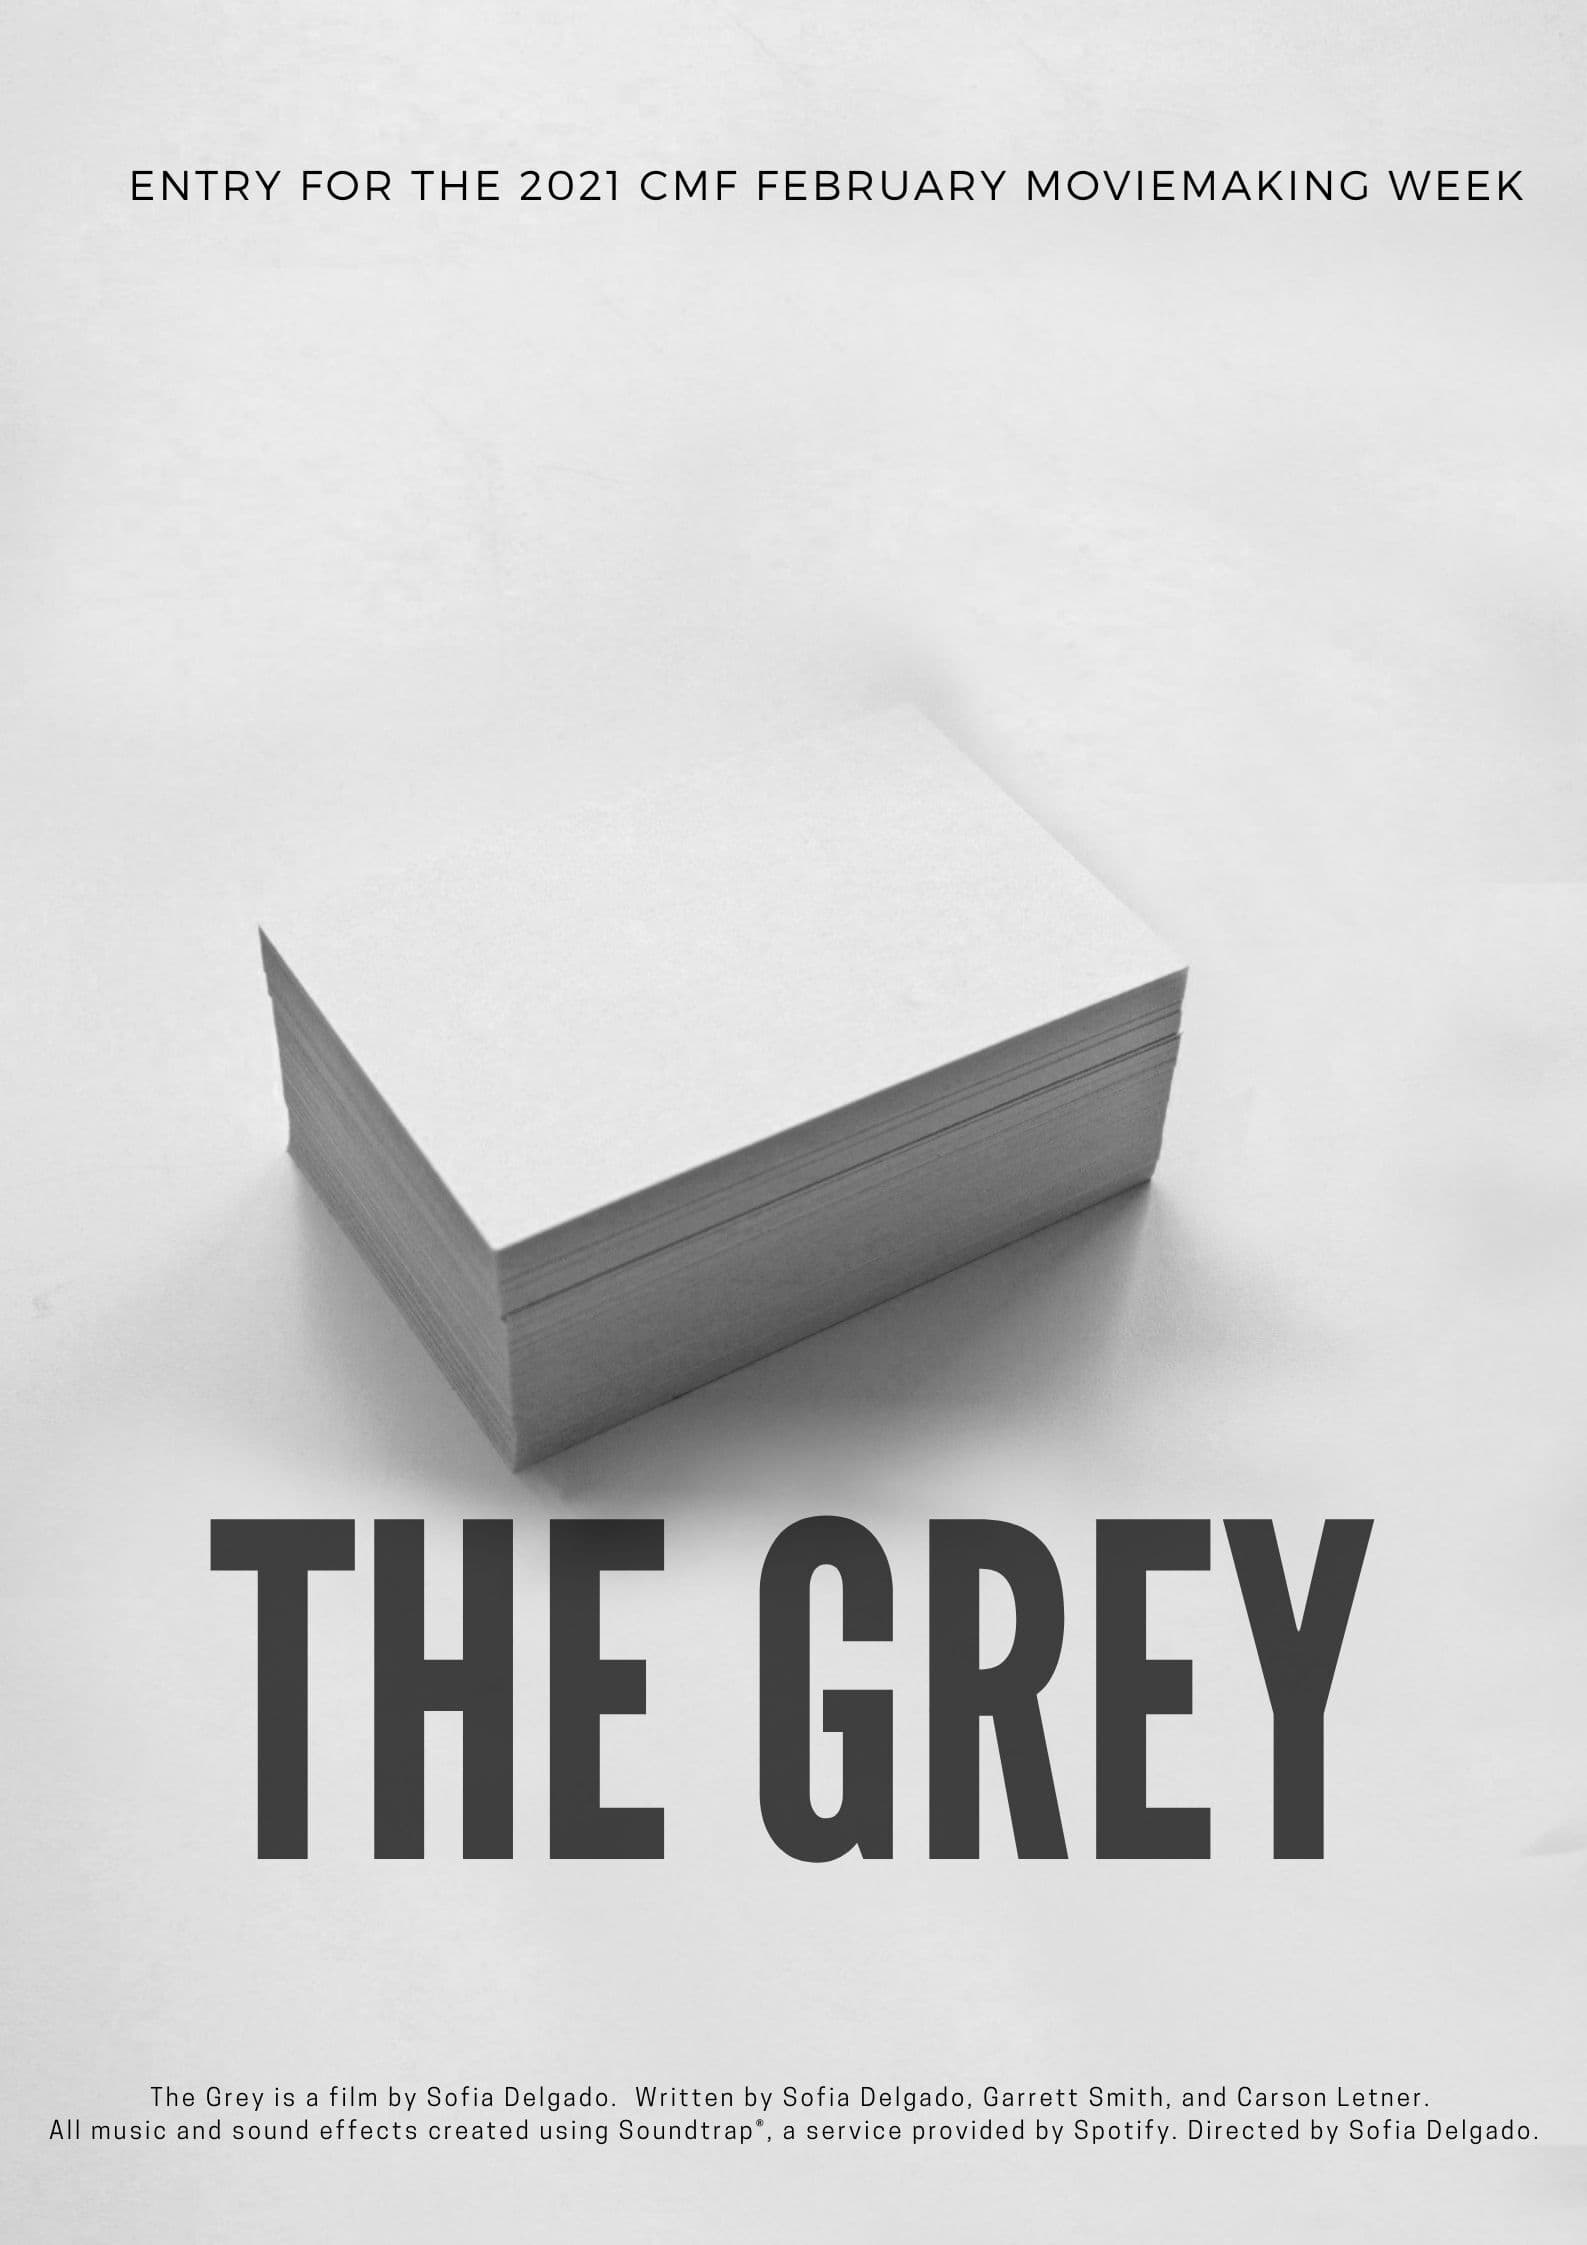 The Grey (1970)